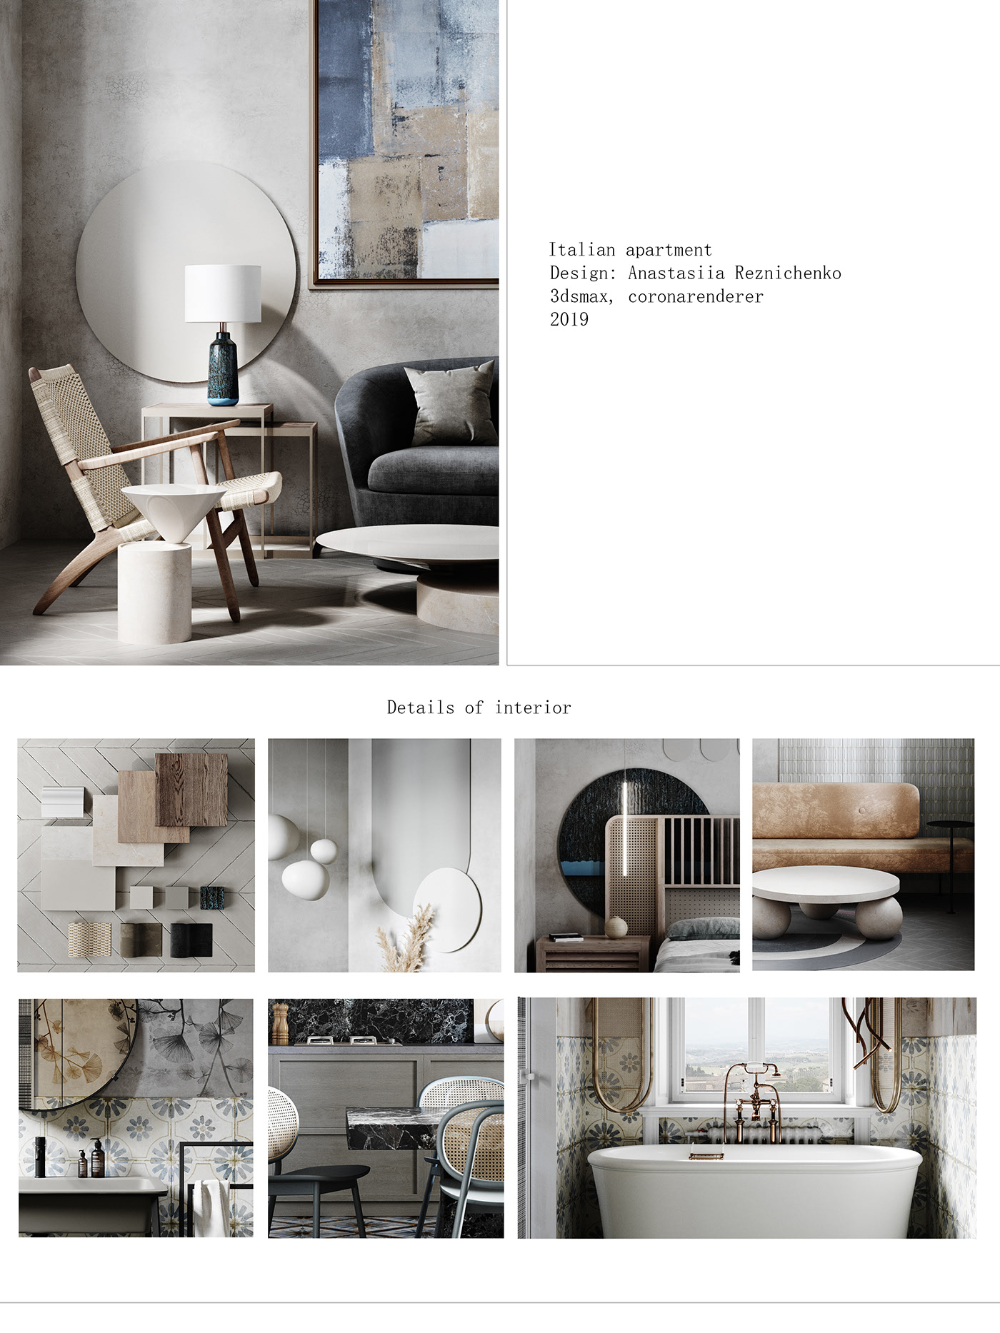 Autodesk Room Design: Italian Apartment On Behance (With Images)